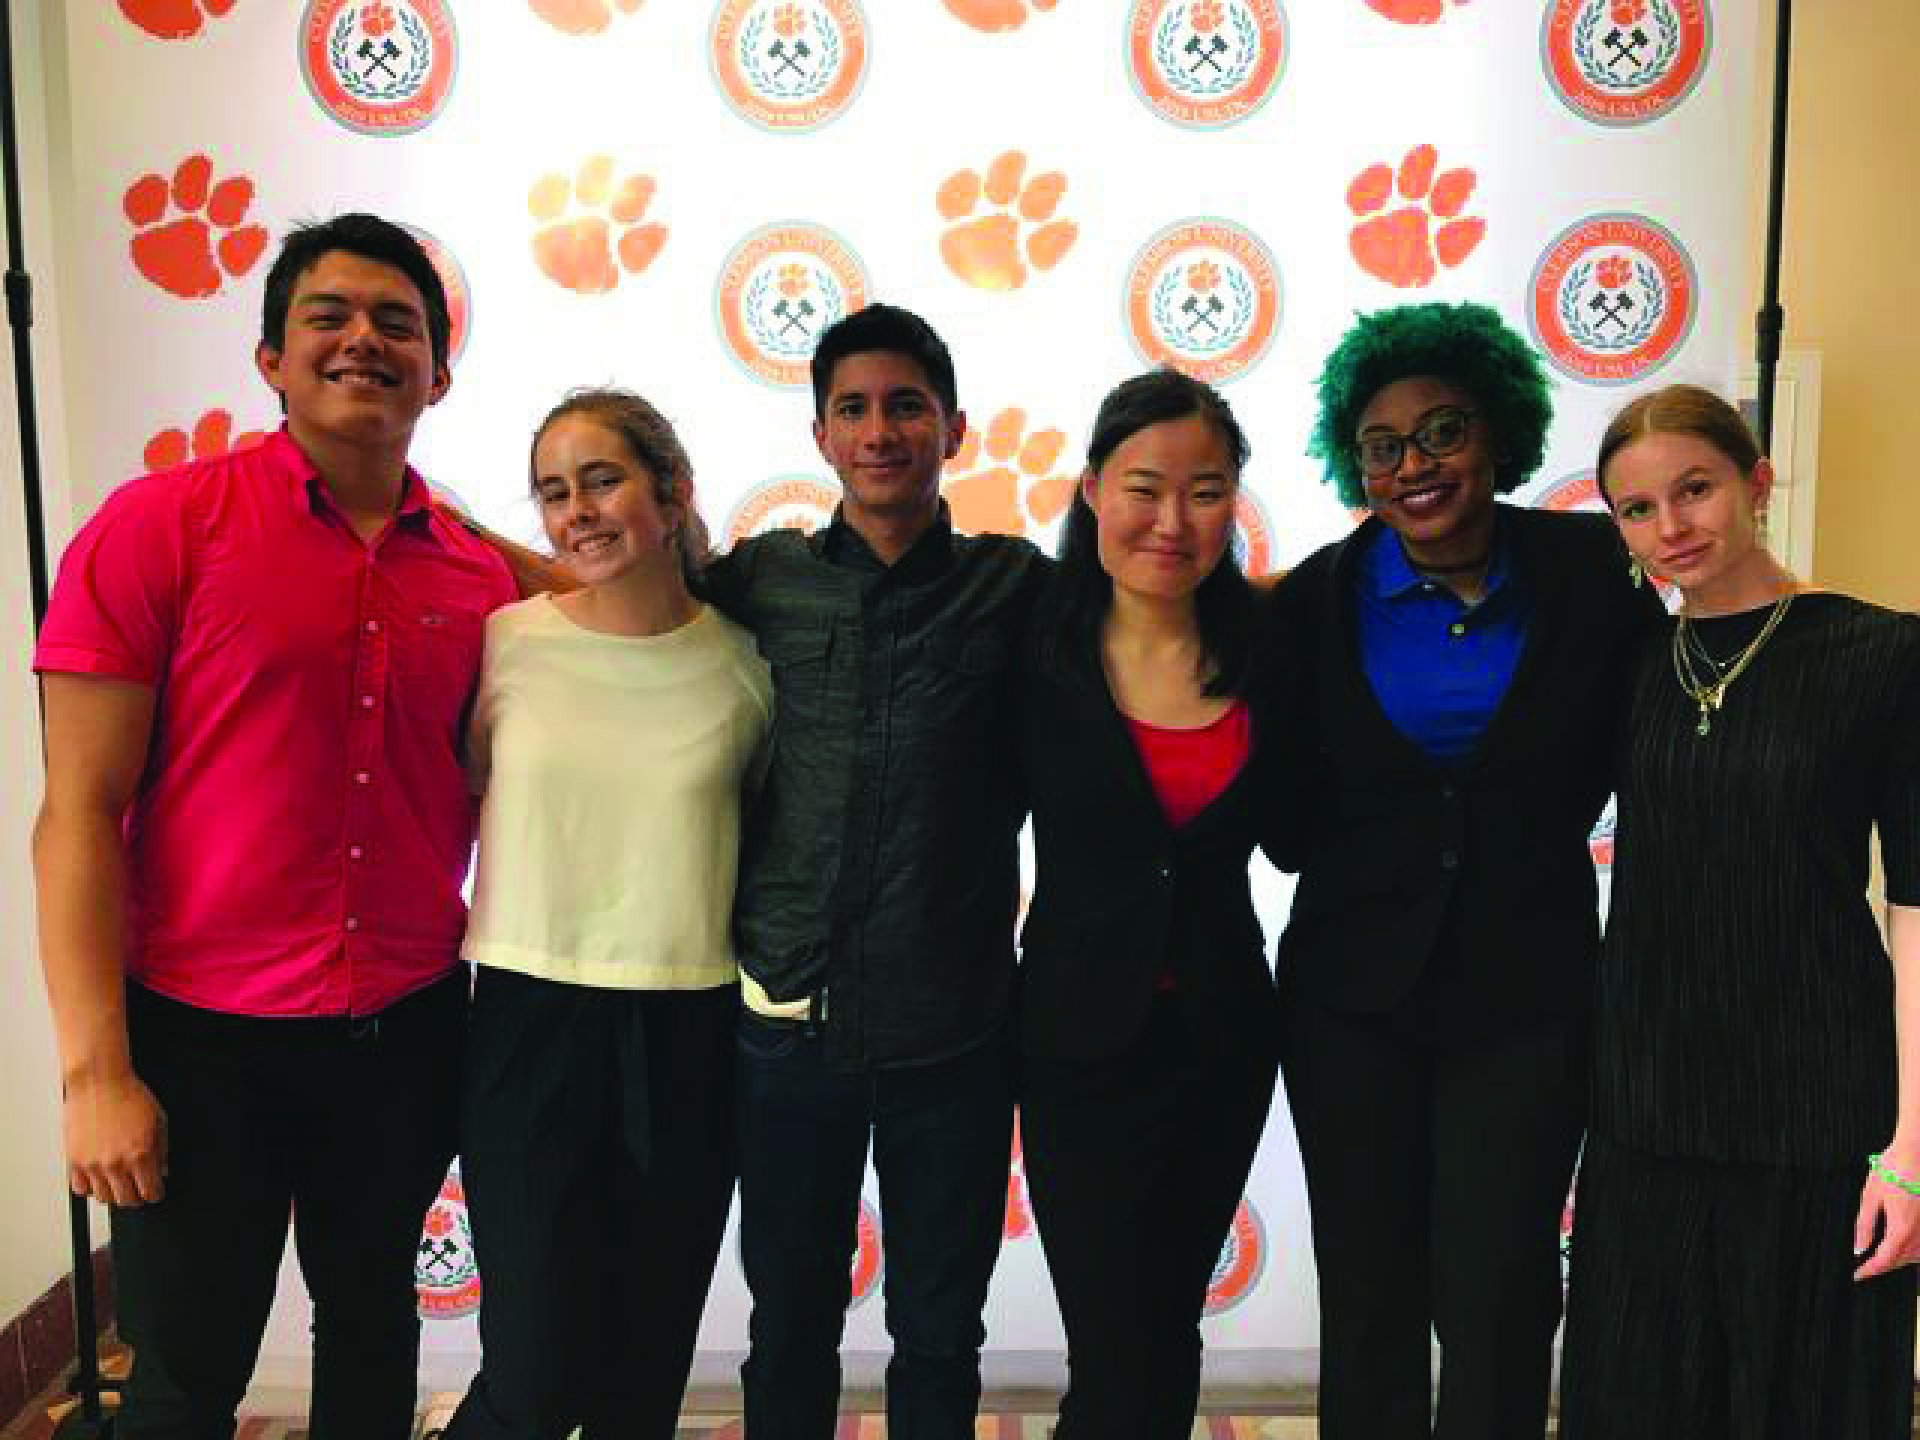 A few members of debate posing at Nationals. (From left to right) Fabian Cuevas, Sydney Verga, Devon Escoto, Hannah Koh, Arynn